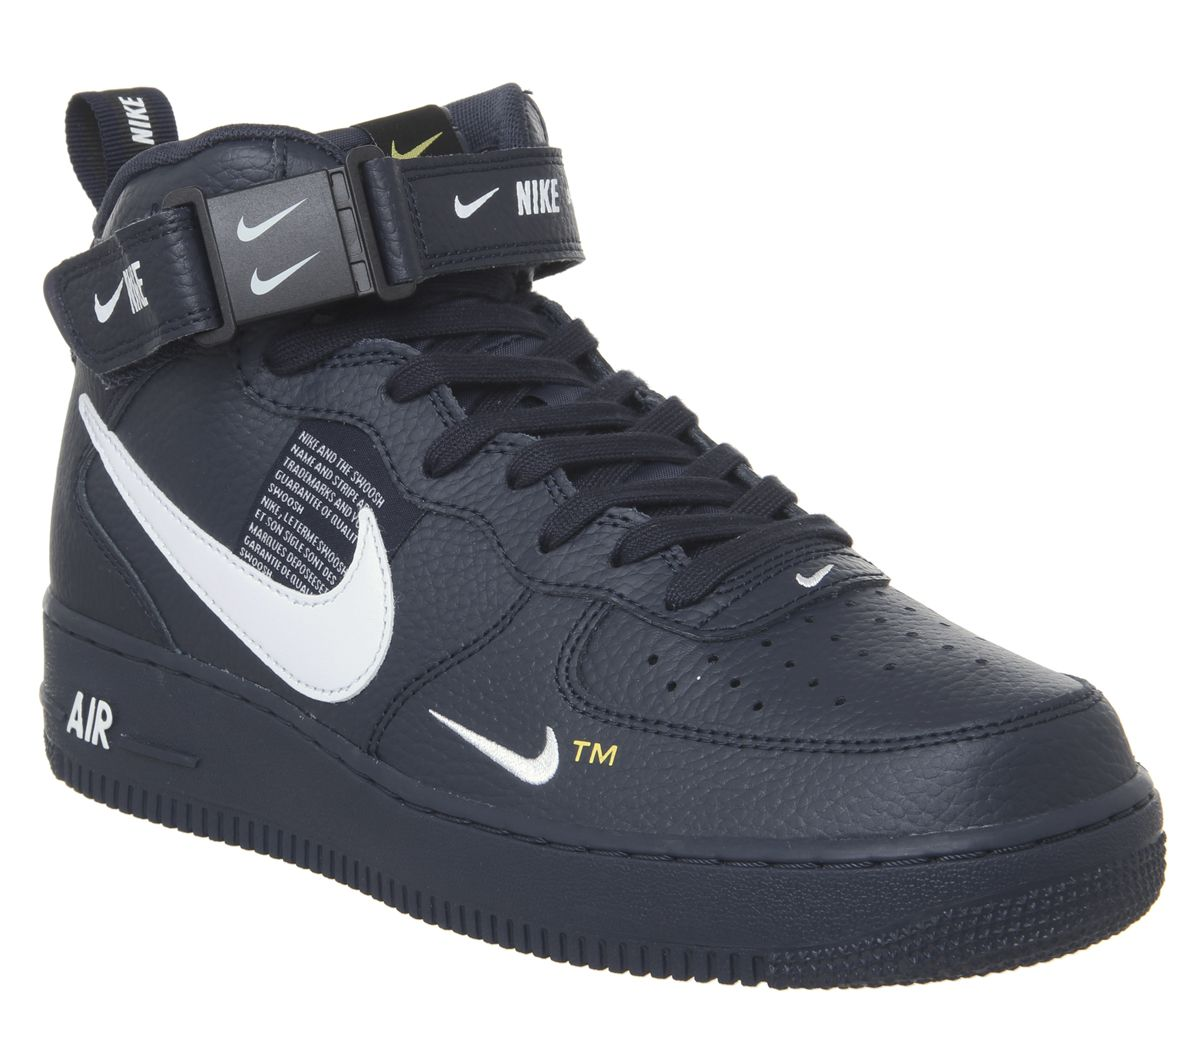 super popular 11482 2b844 Nike Air Force 1 Mid Lv8 Trainers Obsidian White Black Tour Yellow ...